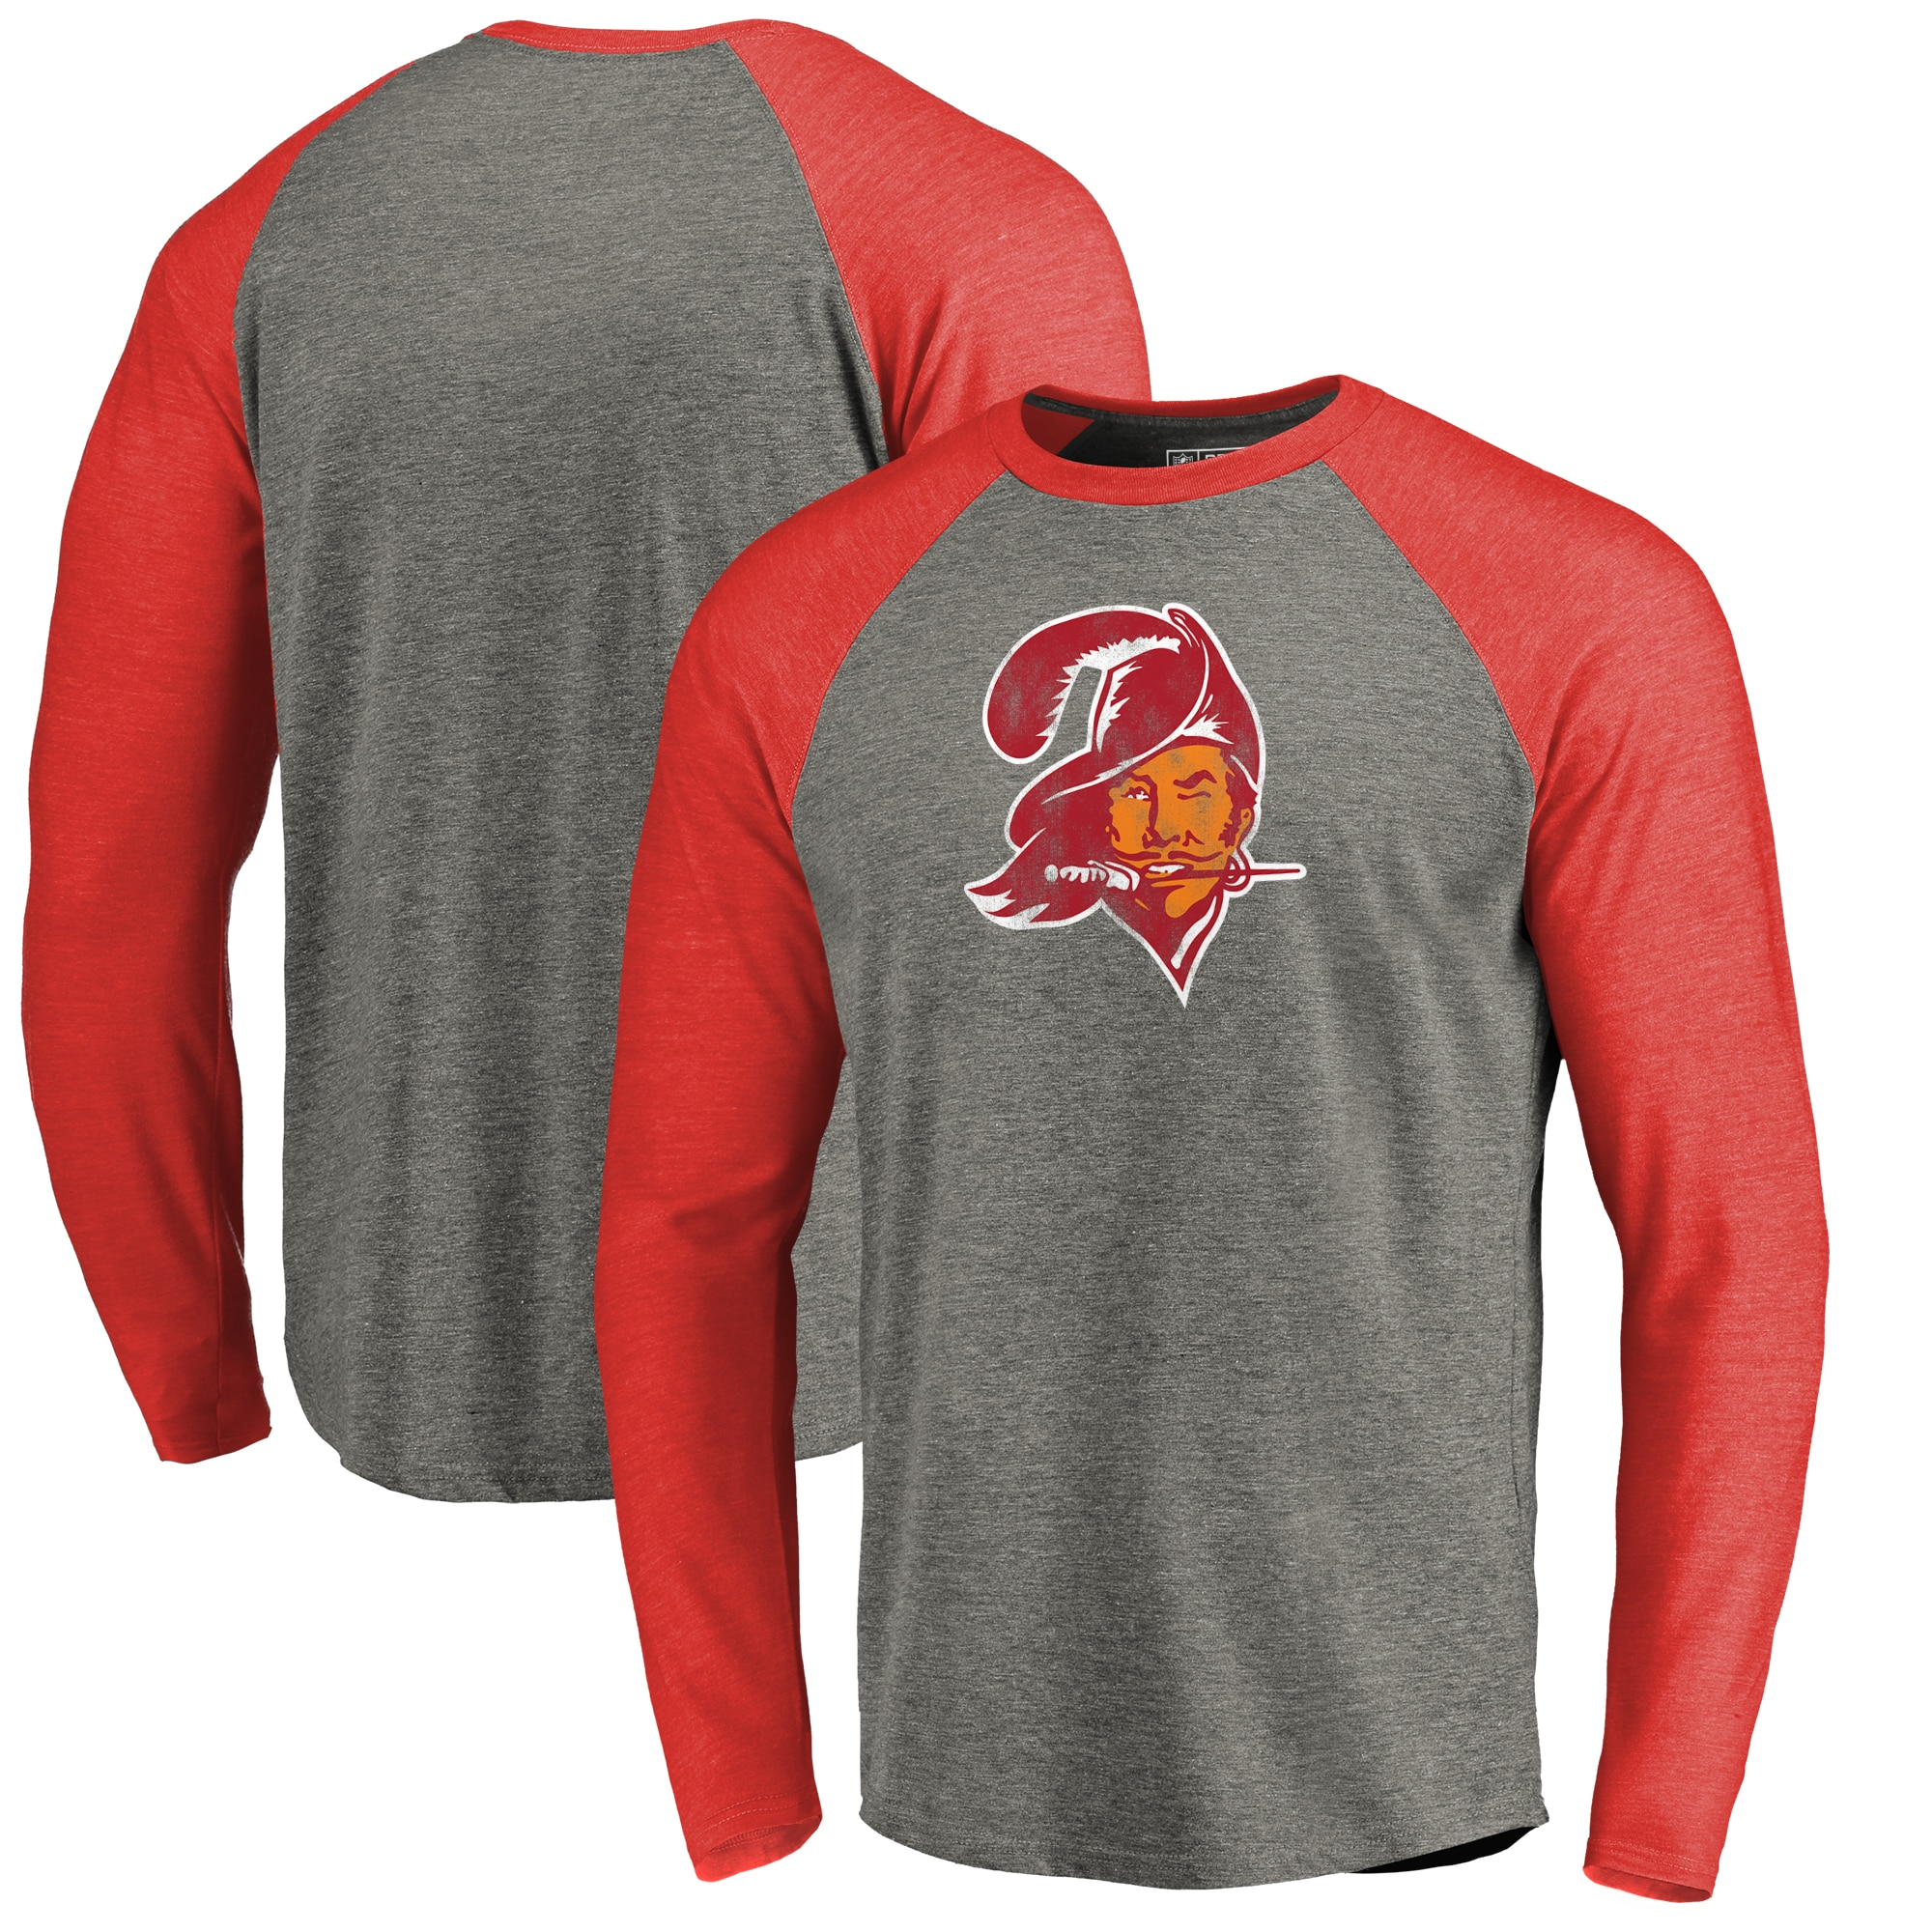 Tampa Bay Buccaneers NFL Pro Line by Fanatics Branded Throwback Logo Big & Tall Long Sleeve Tri-Blend Raglan T-Shirt - Gray/Red